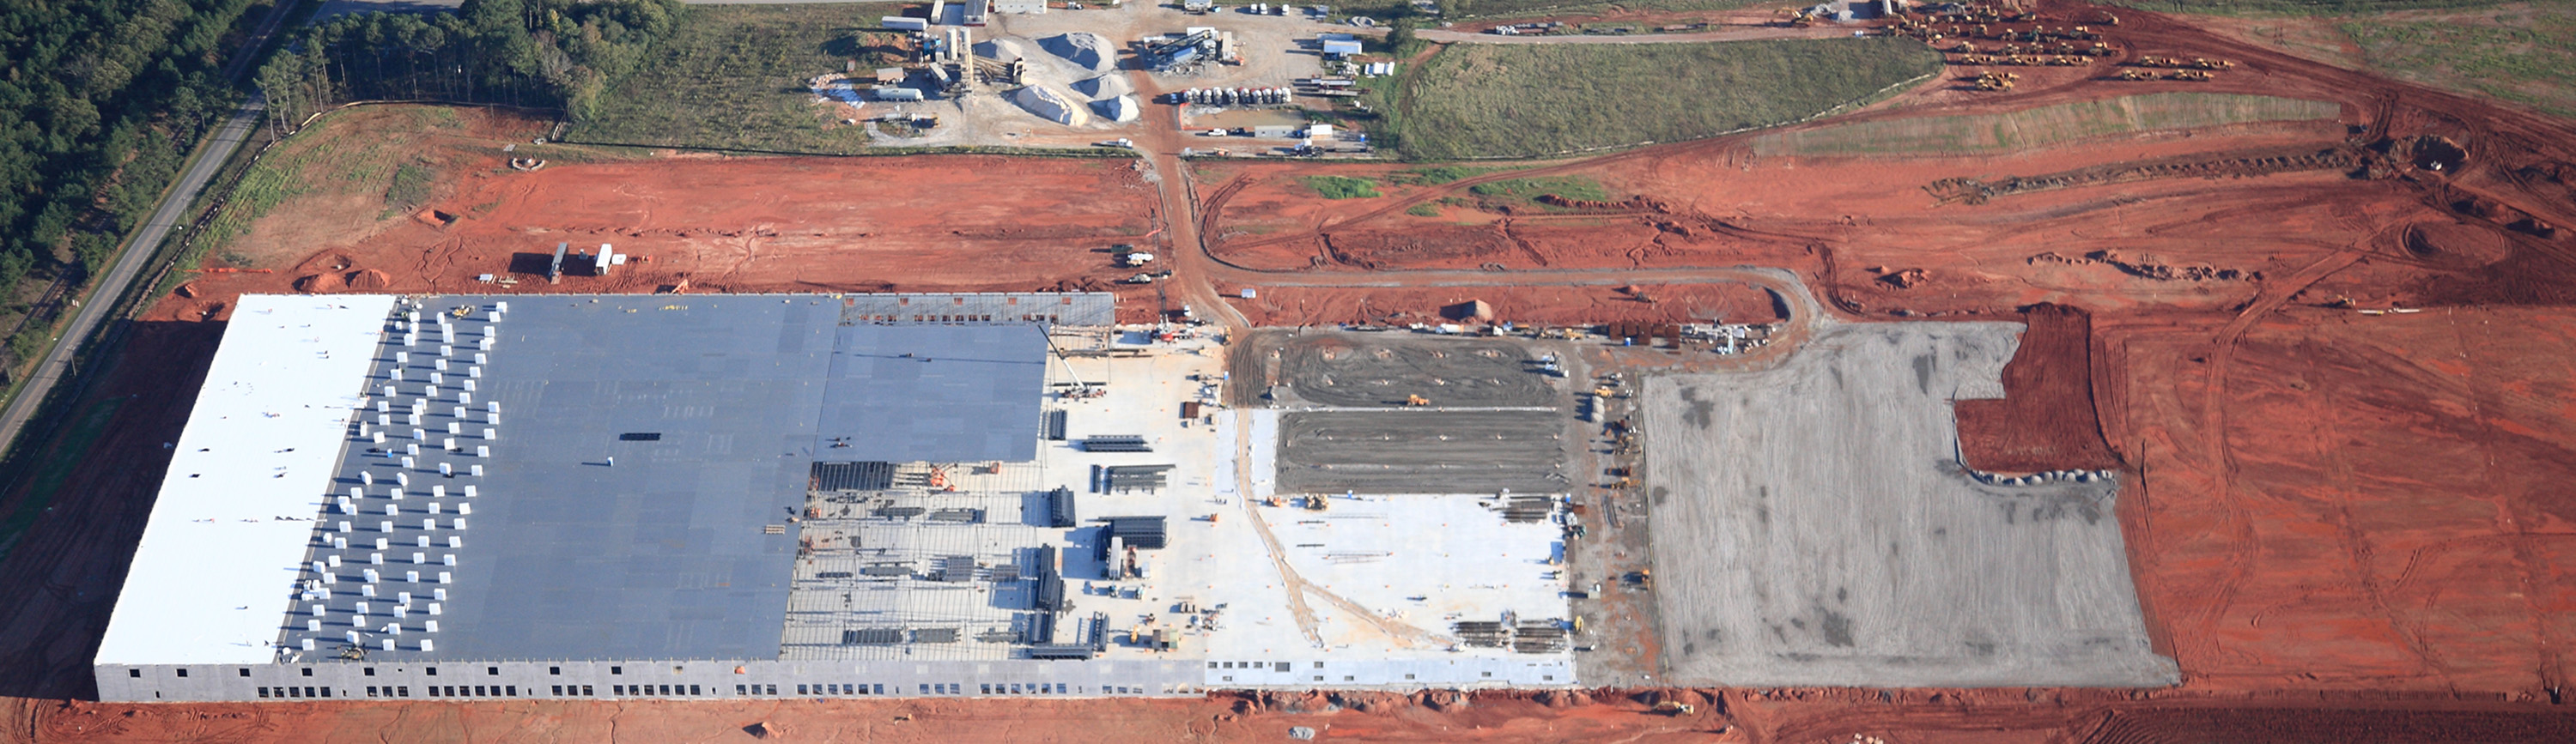 Atlanta Construction Progress Aerial Photography